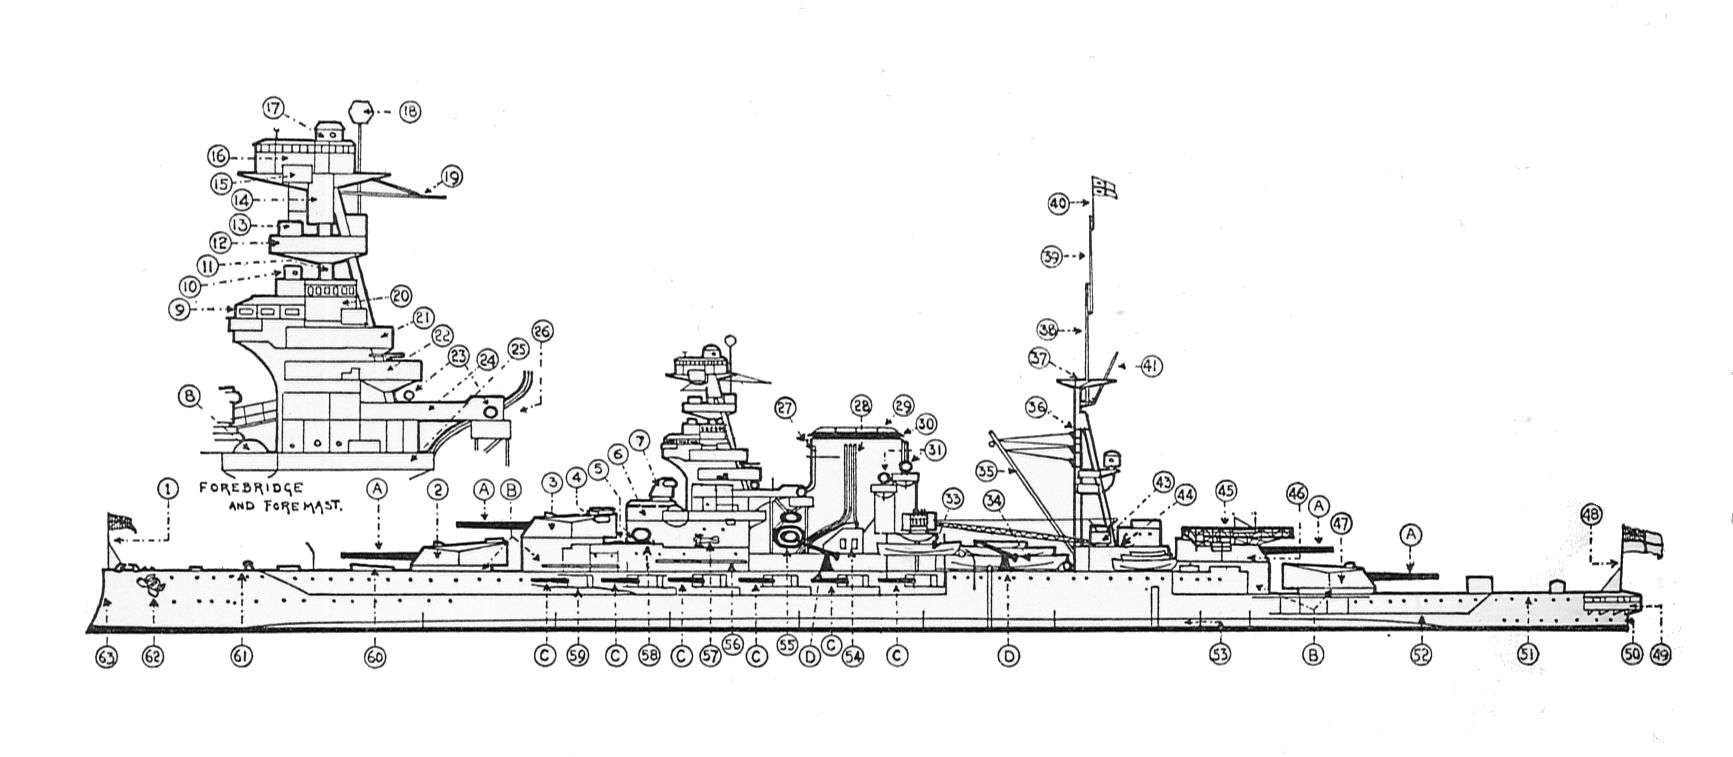 Parts_of_a_battleship_%28Warships_To-day%2C_1936%29.jpg